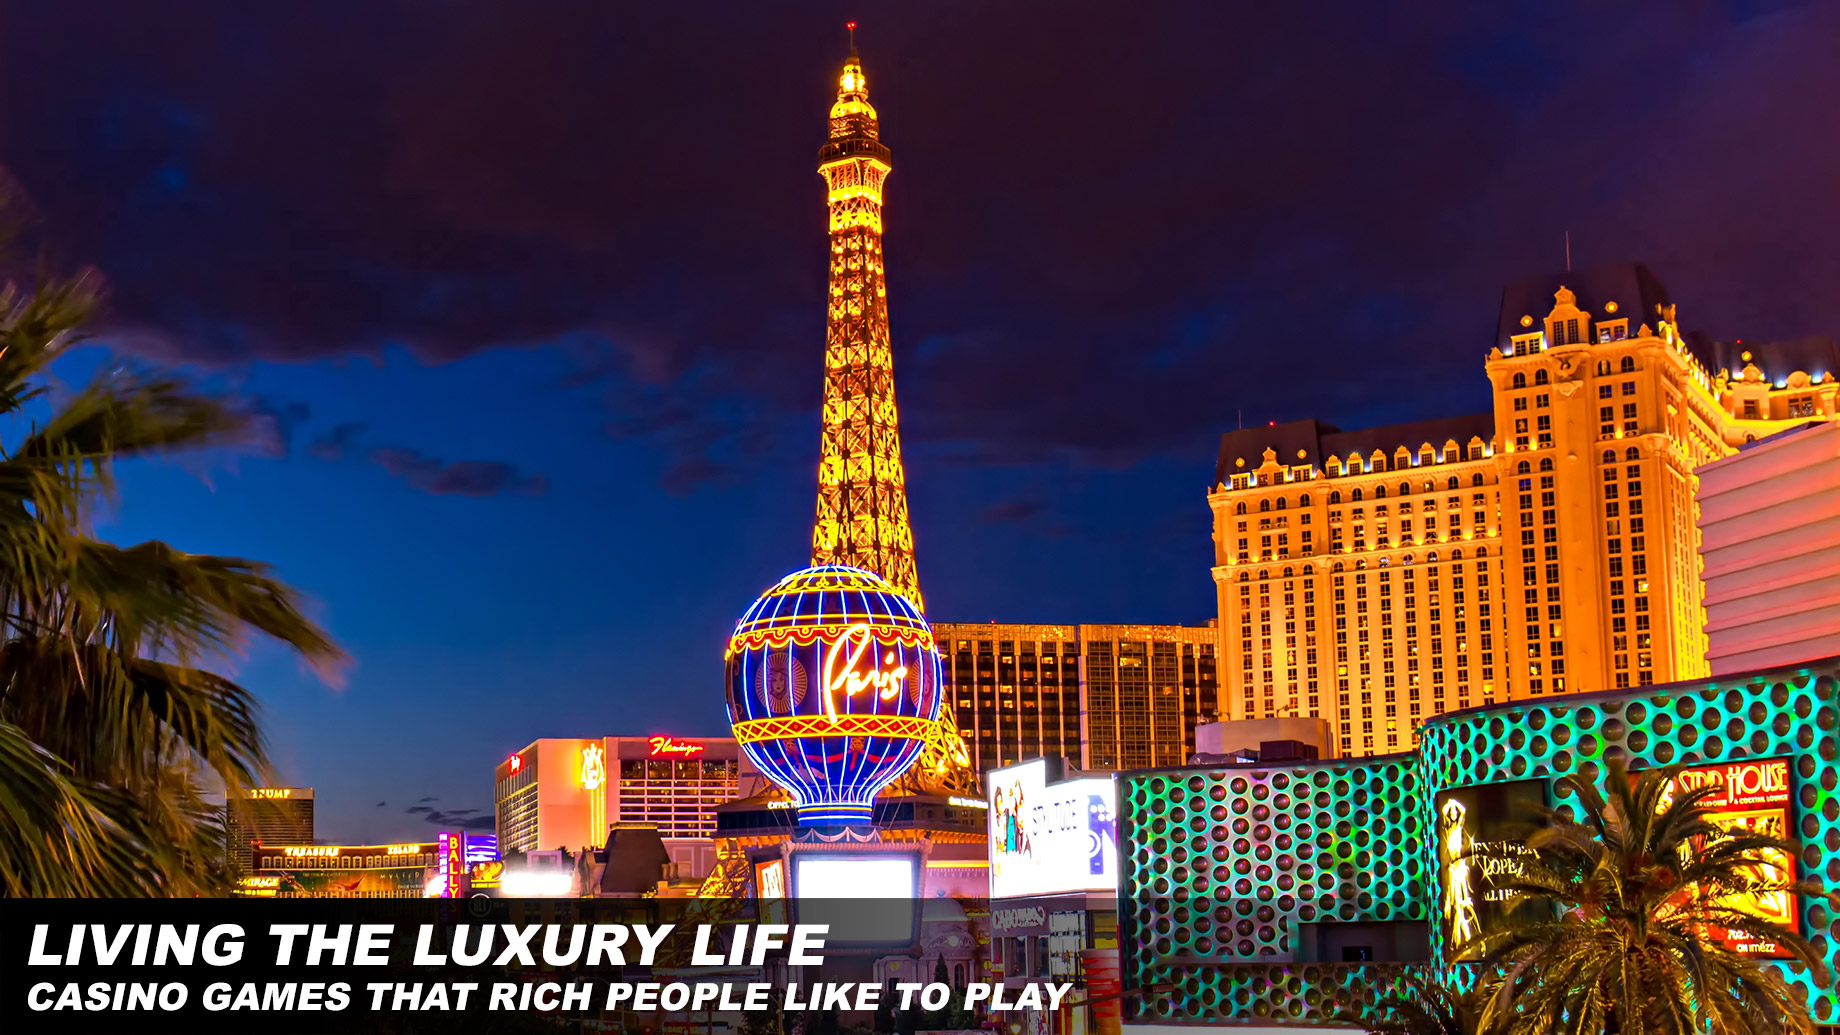 Living the Luxury Life - Casino Games That Rich People Like to Play